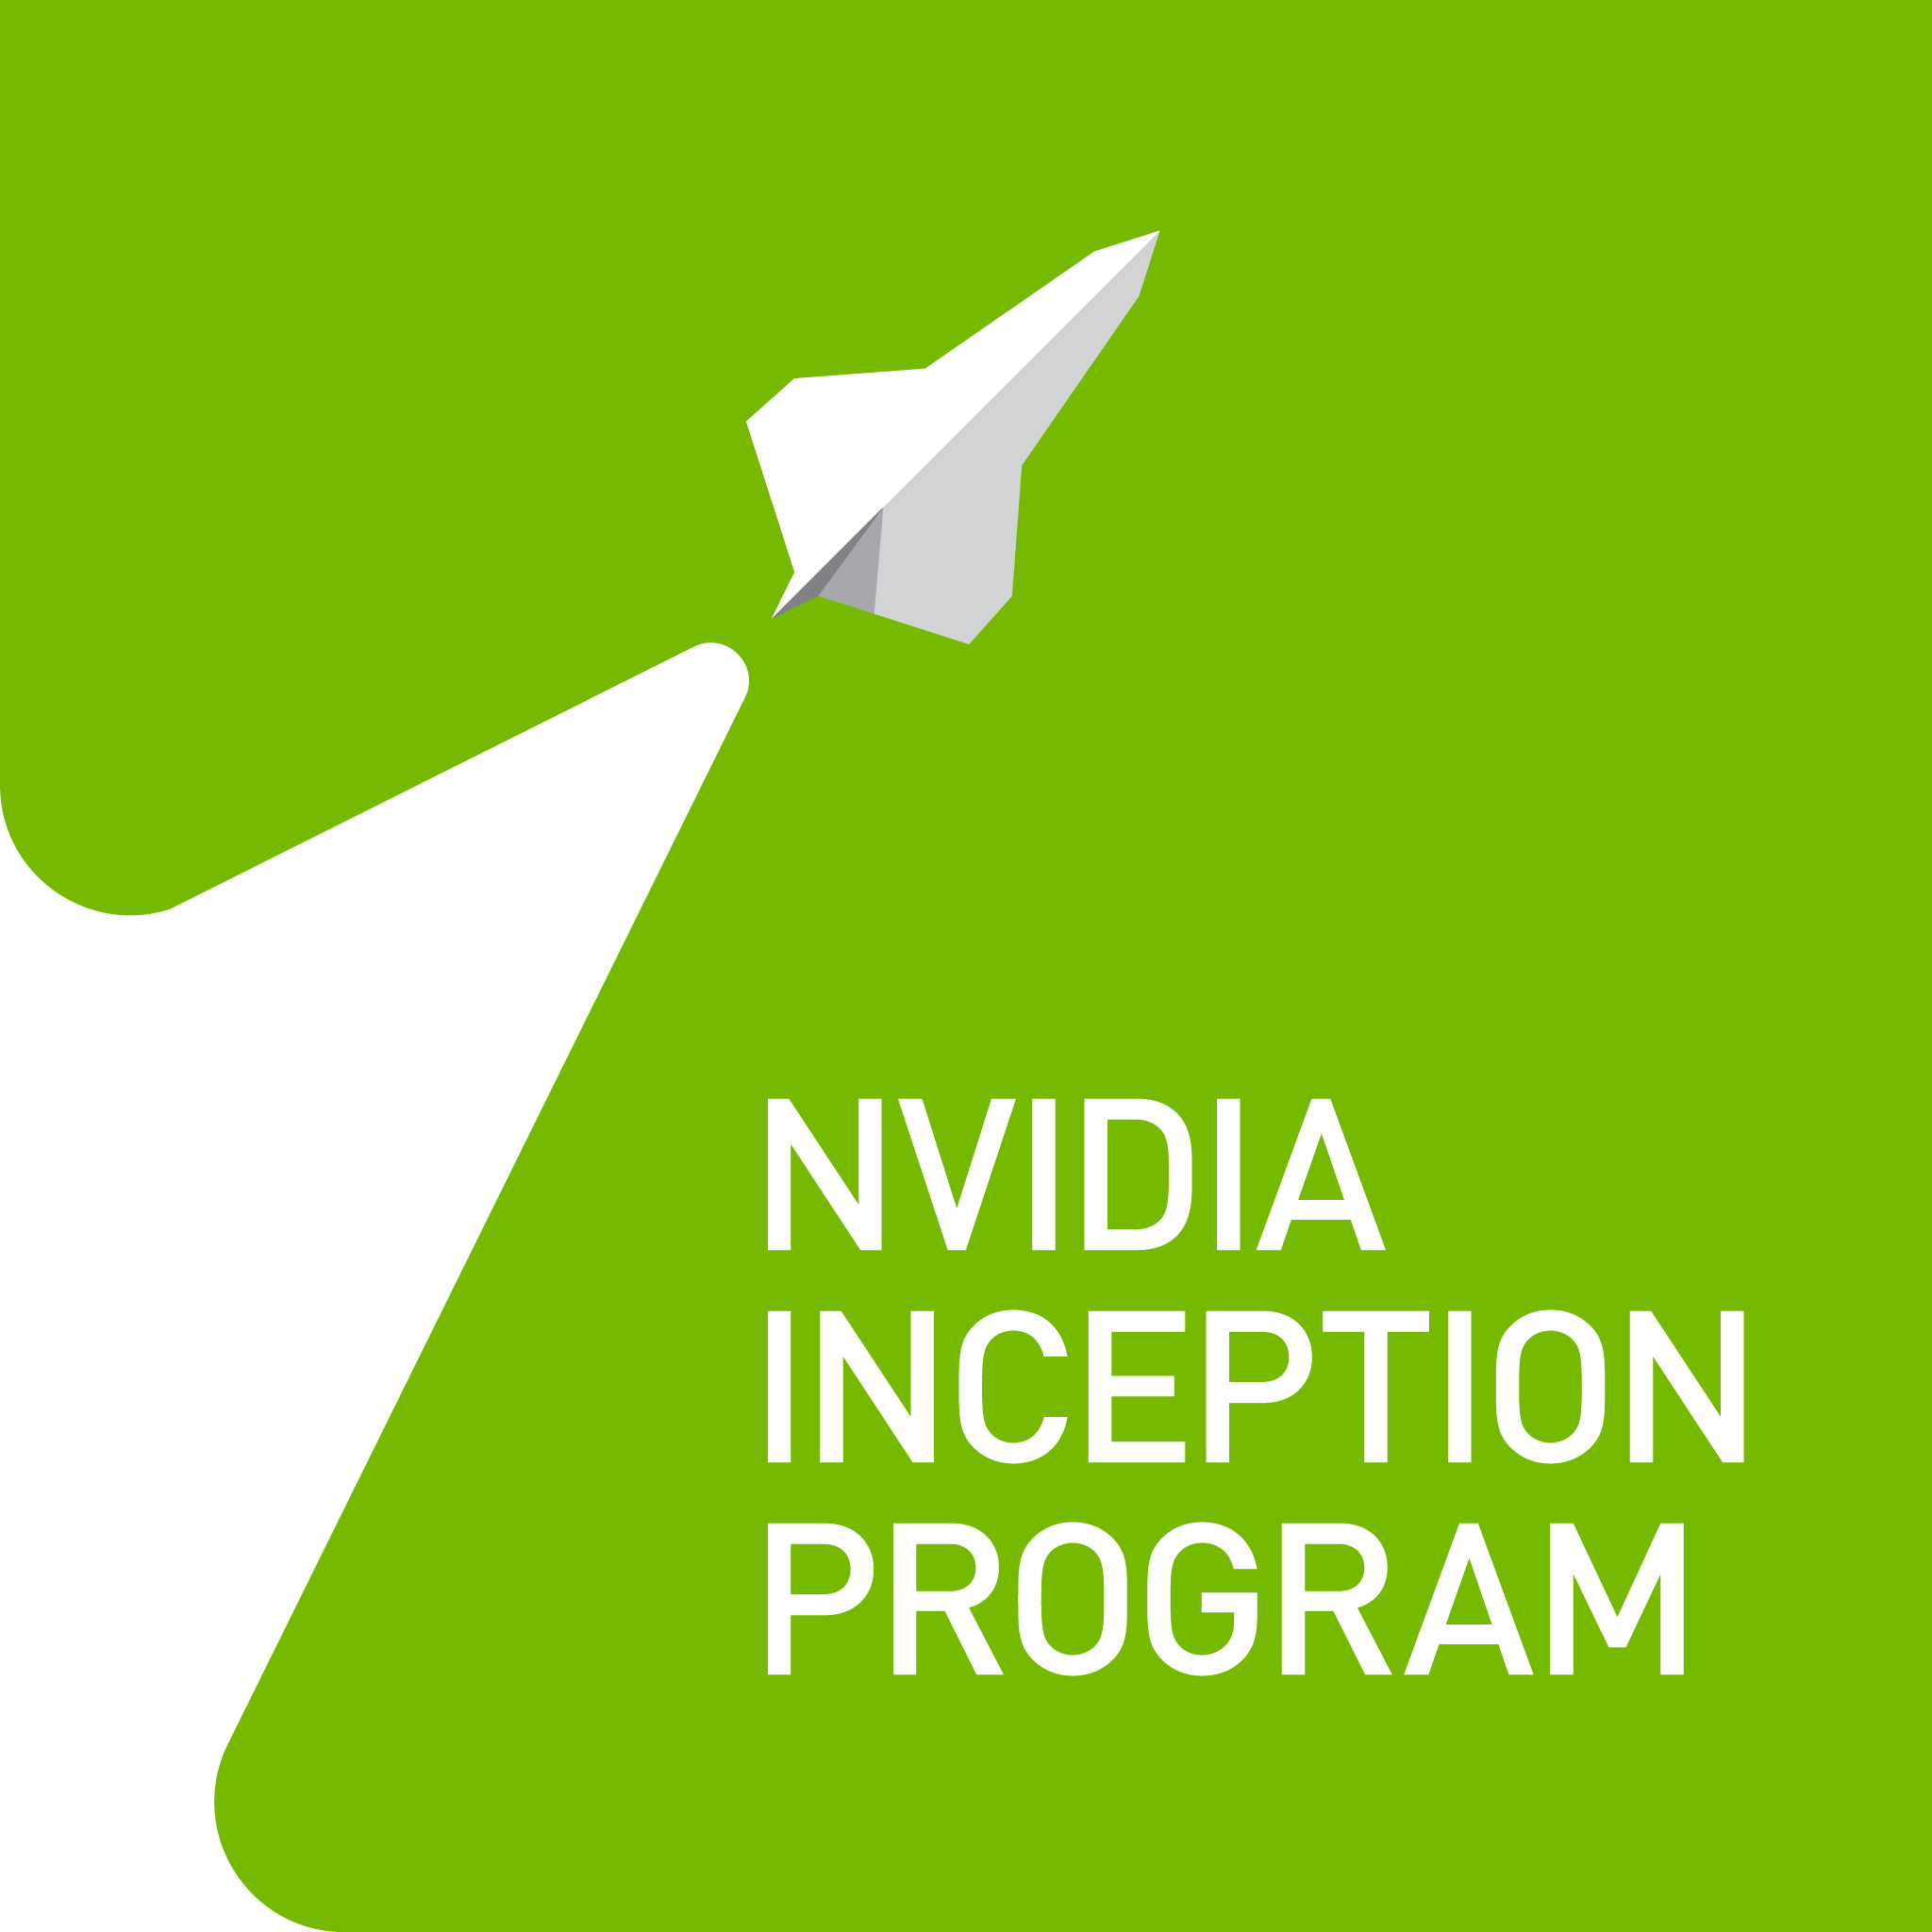 iFarm joins accelerating NVIDIA Inception Program